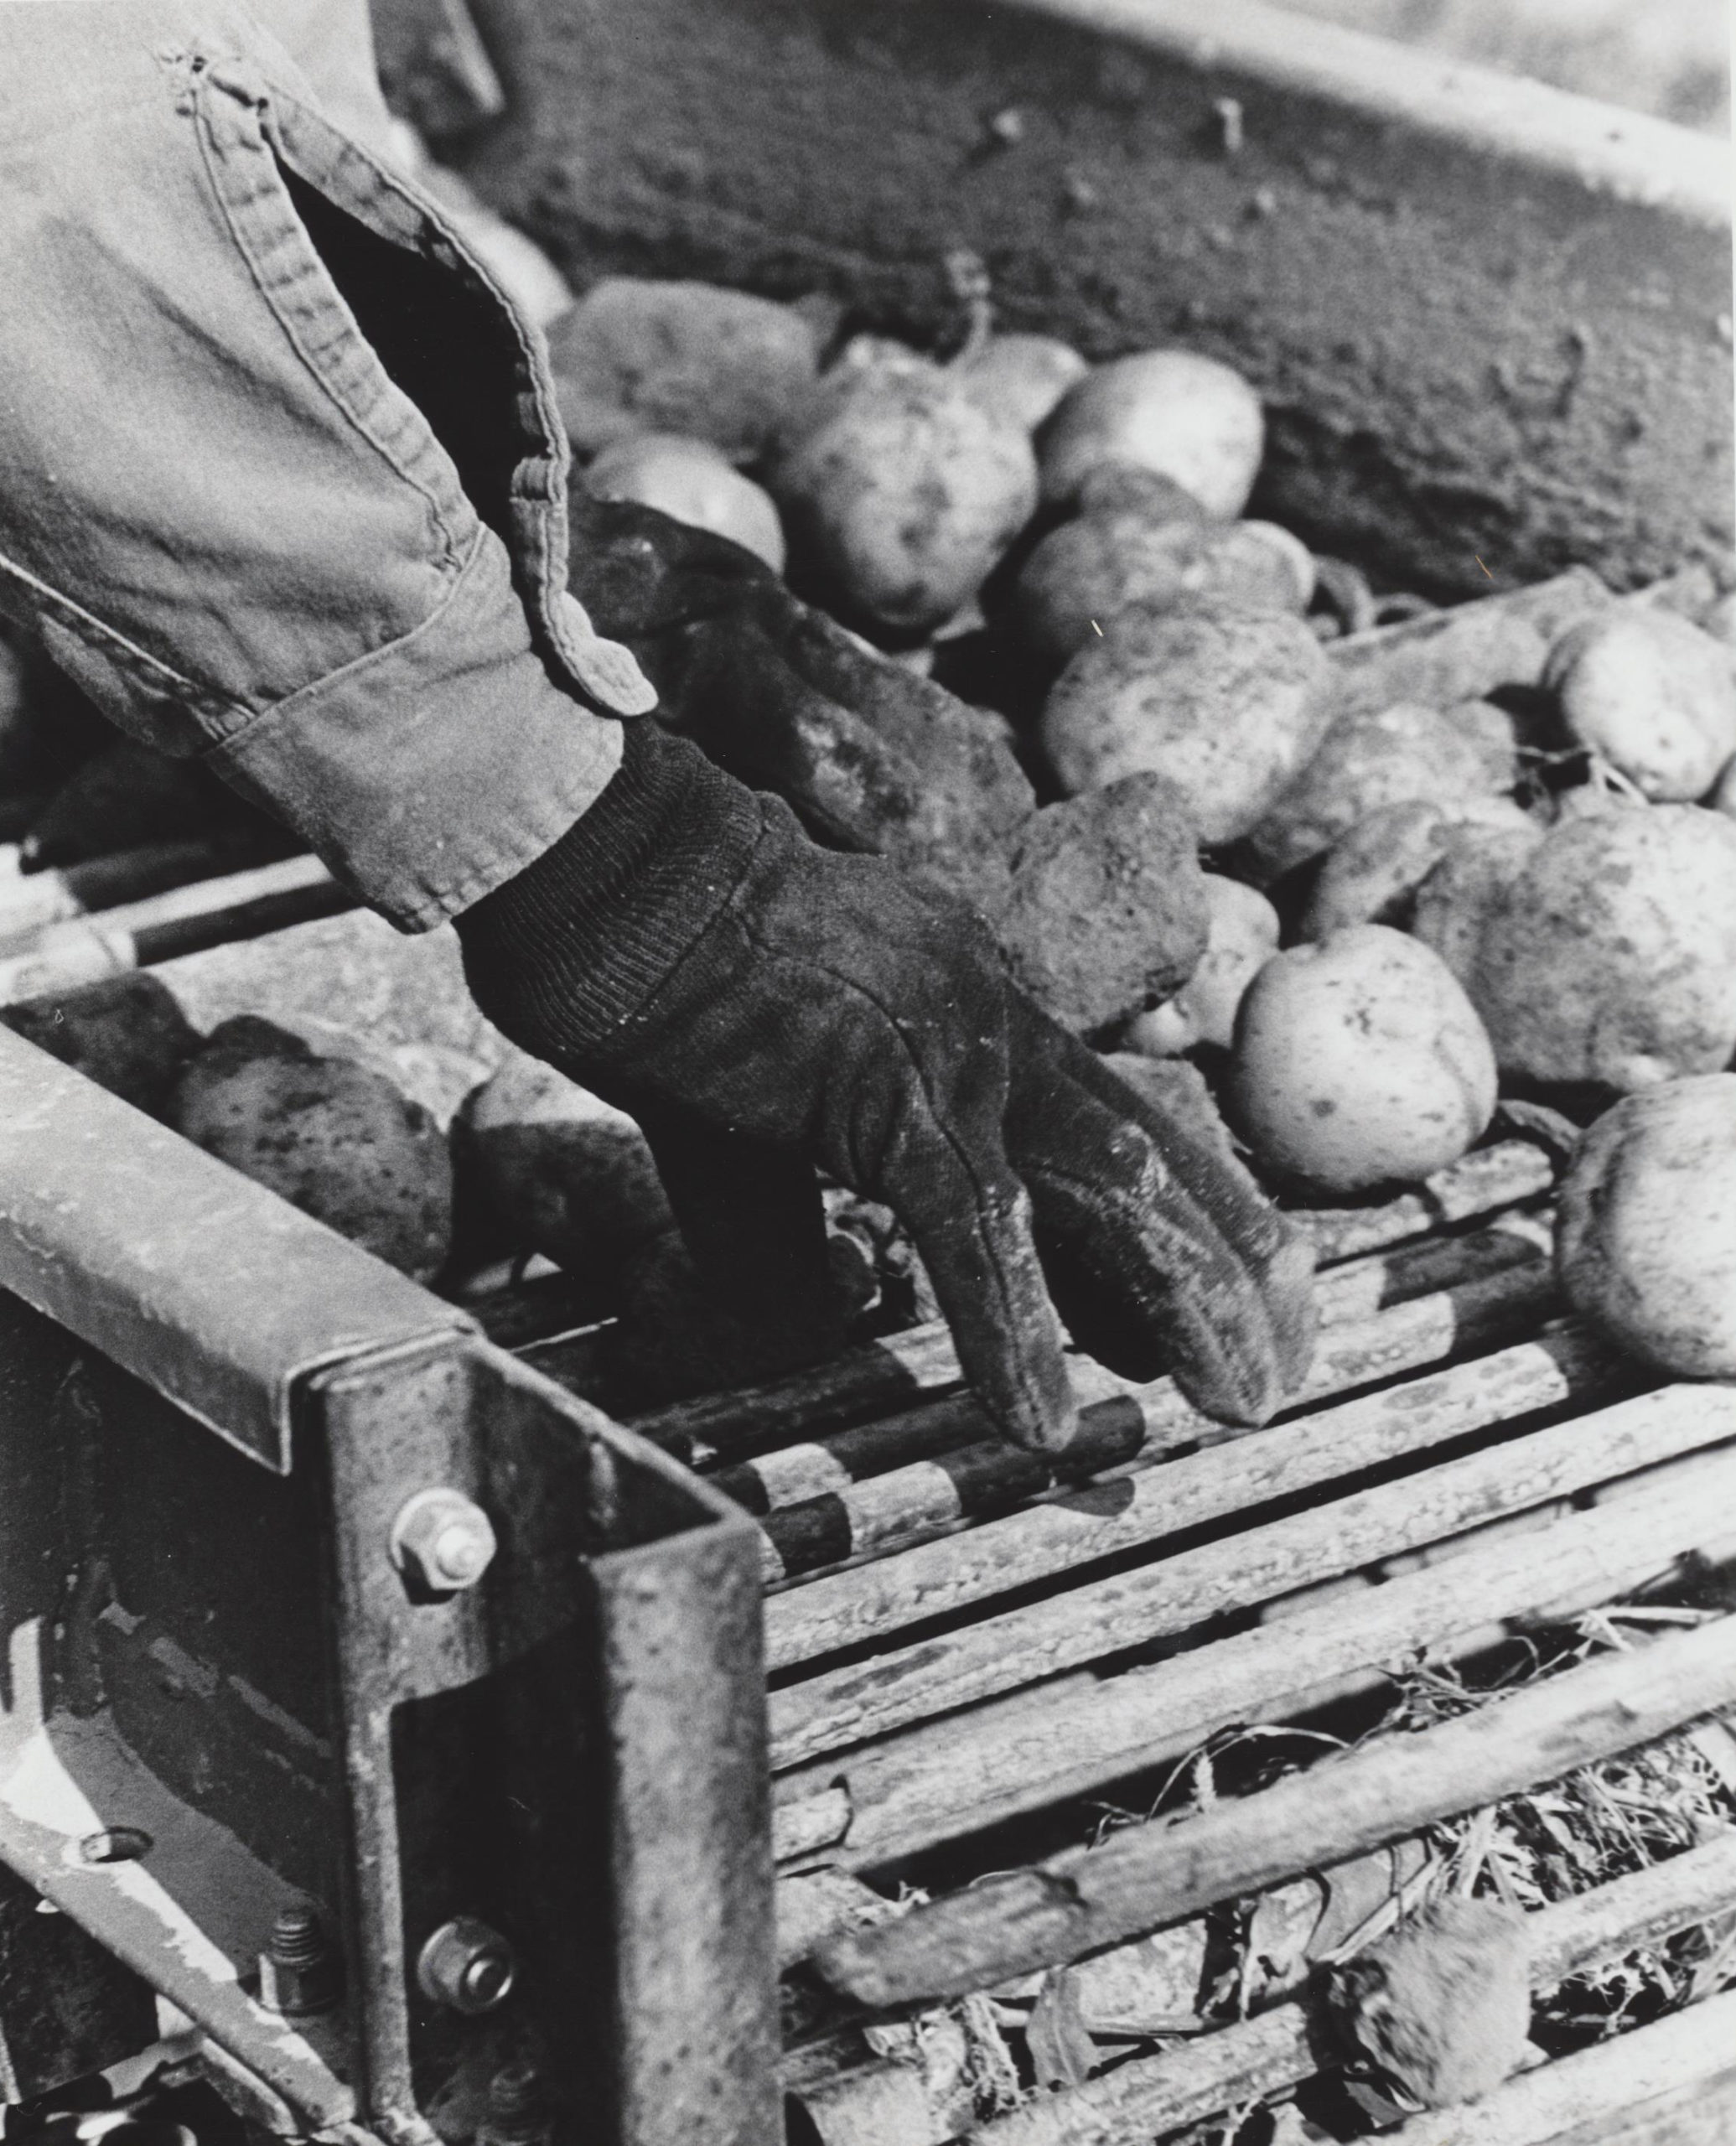 A worker on a South Fork potato farm.